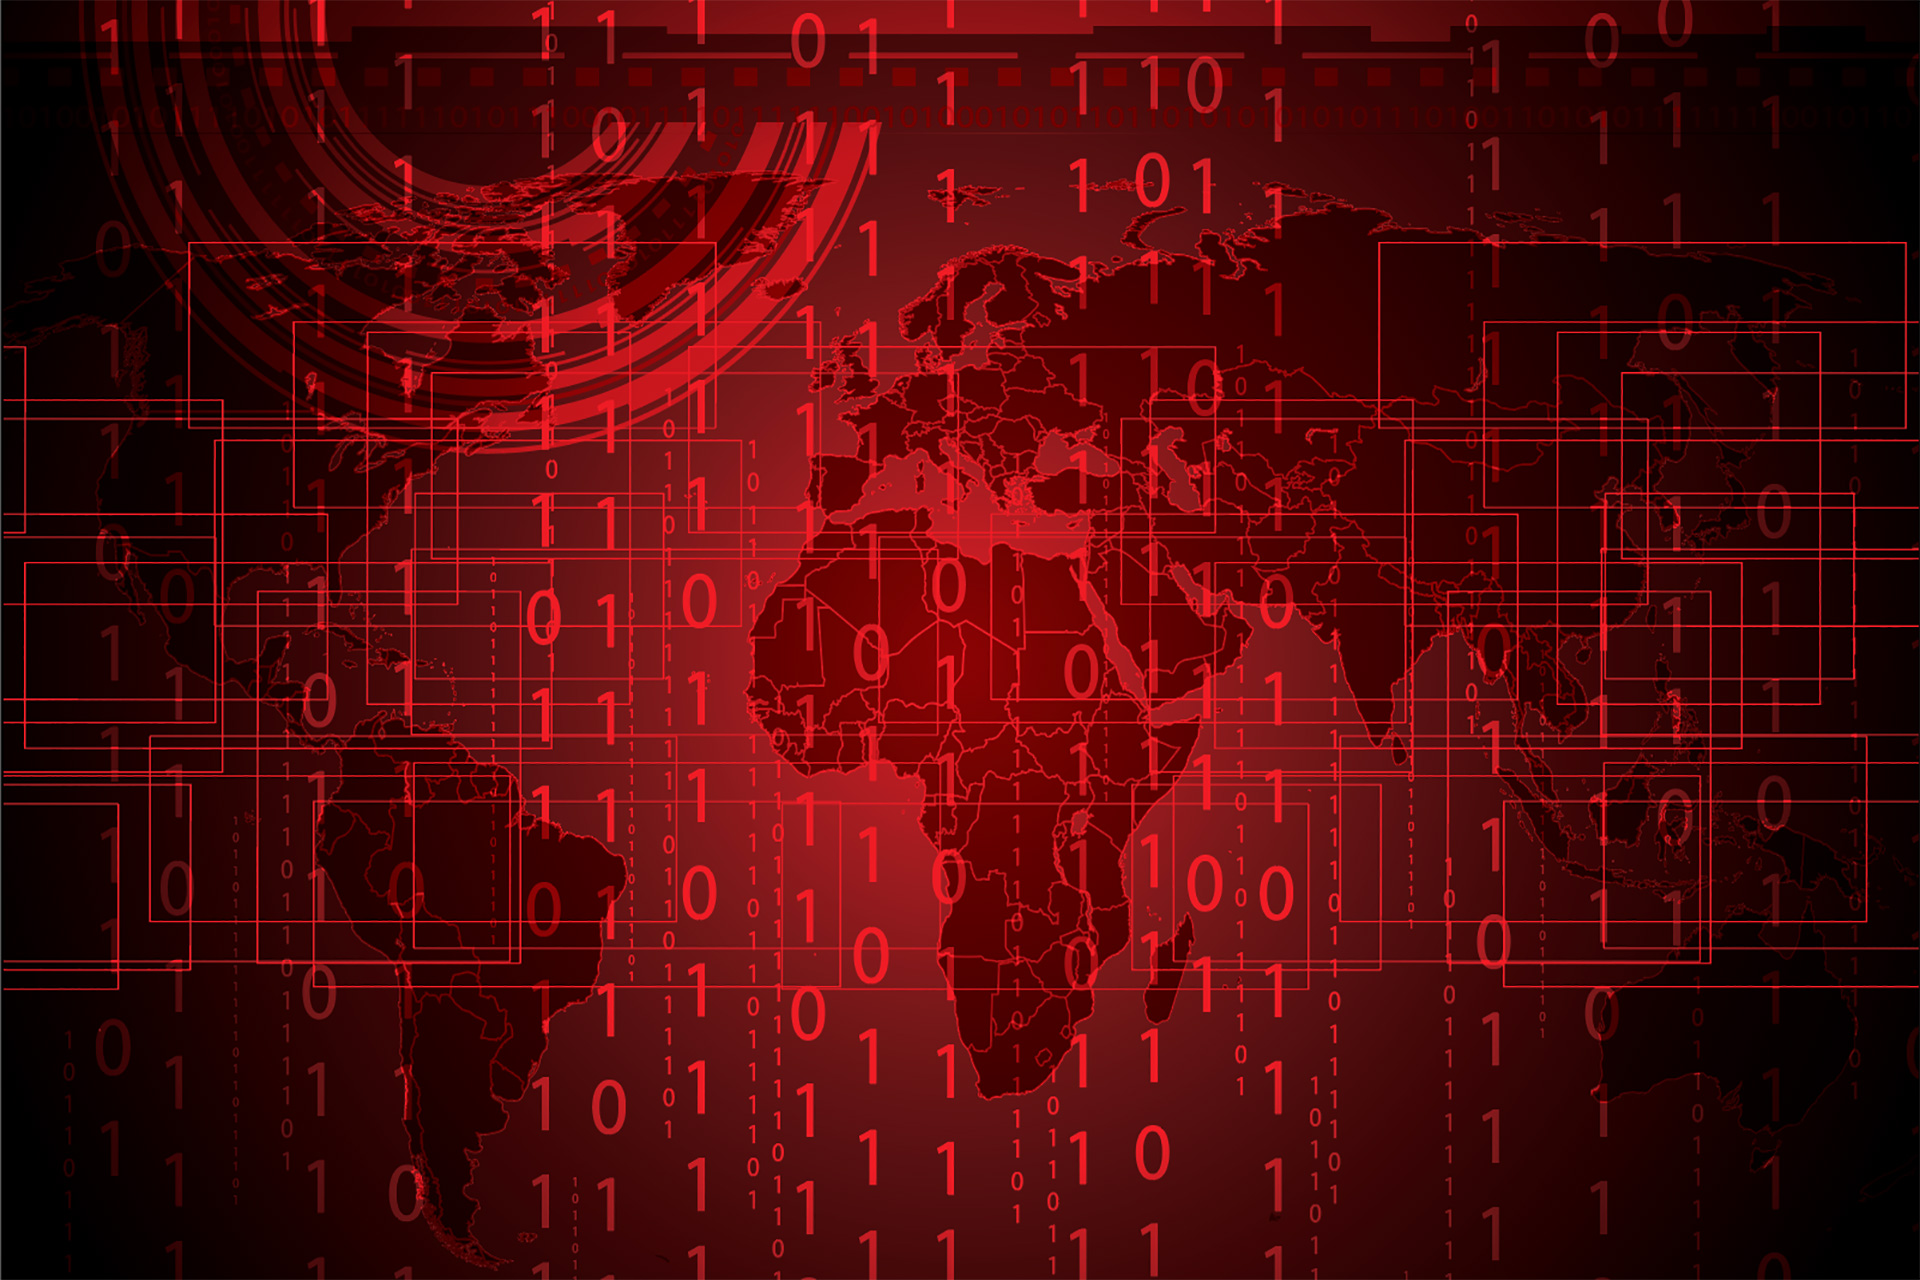 Stuxnet Cyber-Physical Weapon